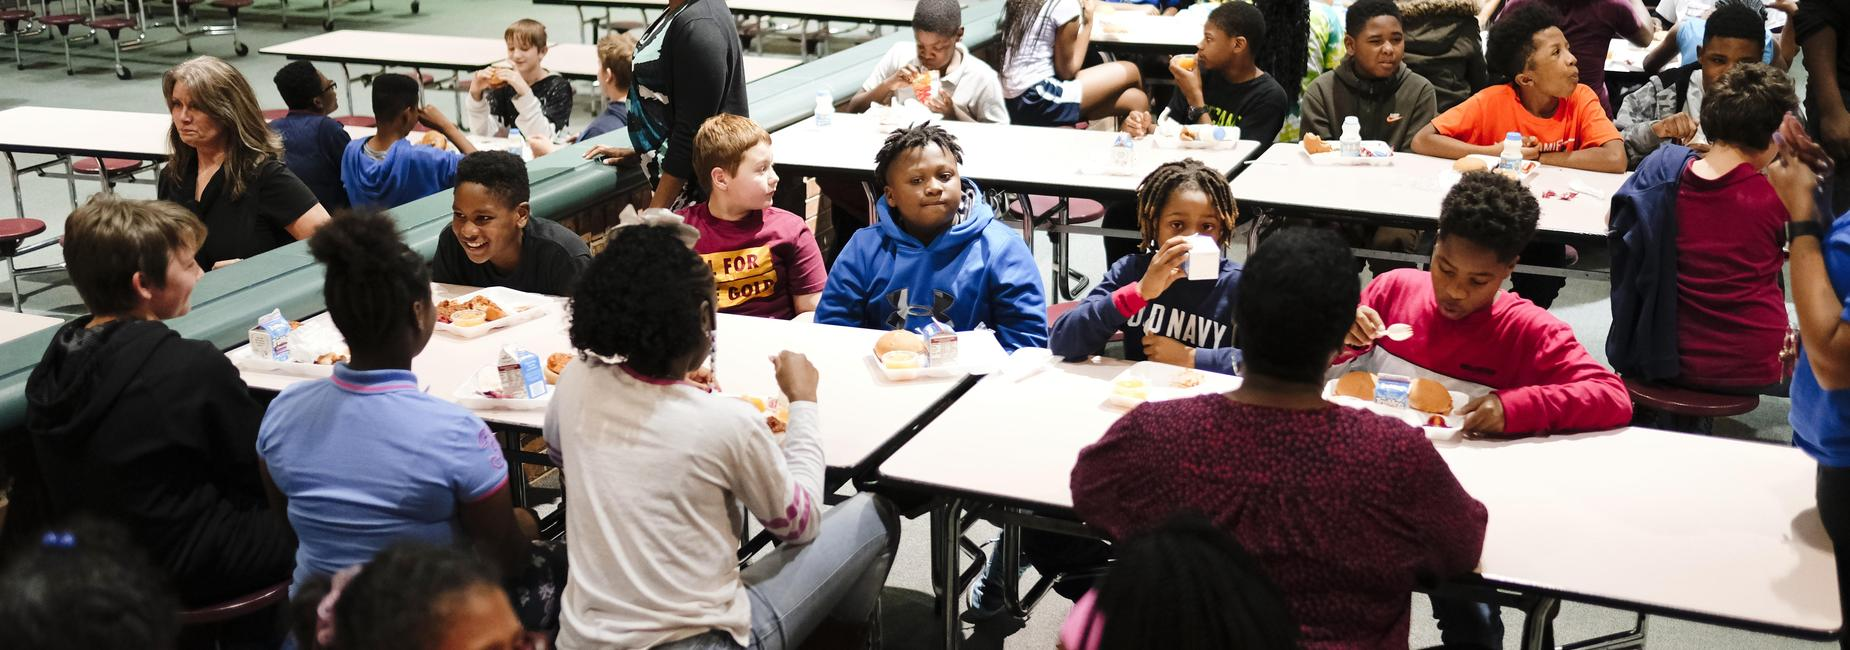 students in lunchroom